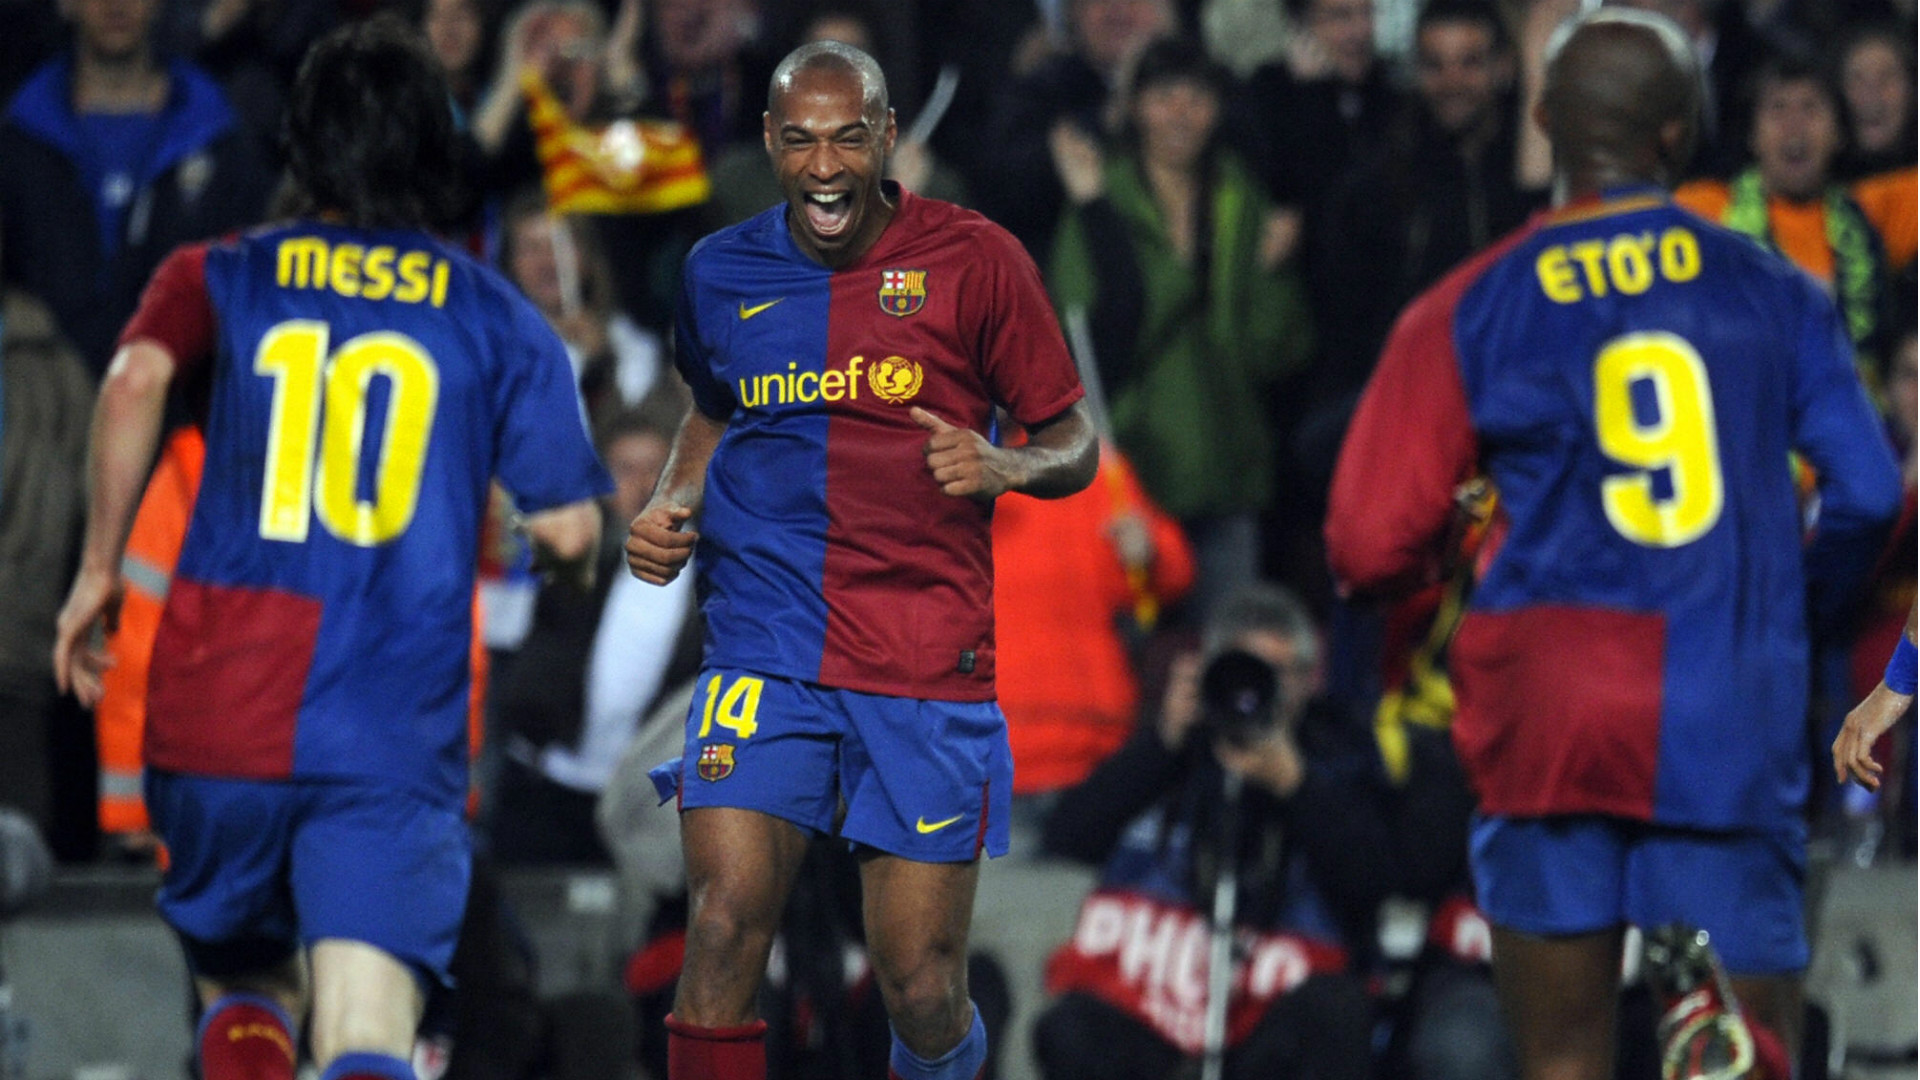 Thierry Henry in India Legendary Arsenal striker to attend